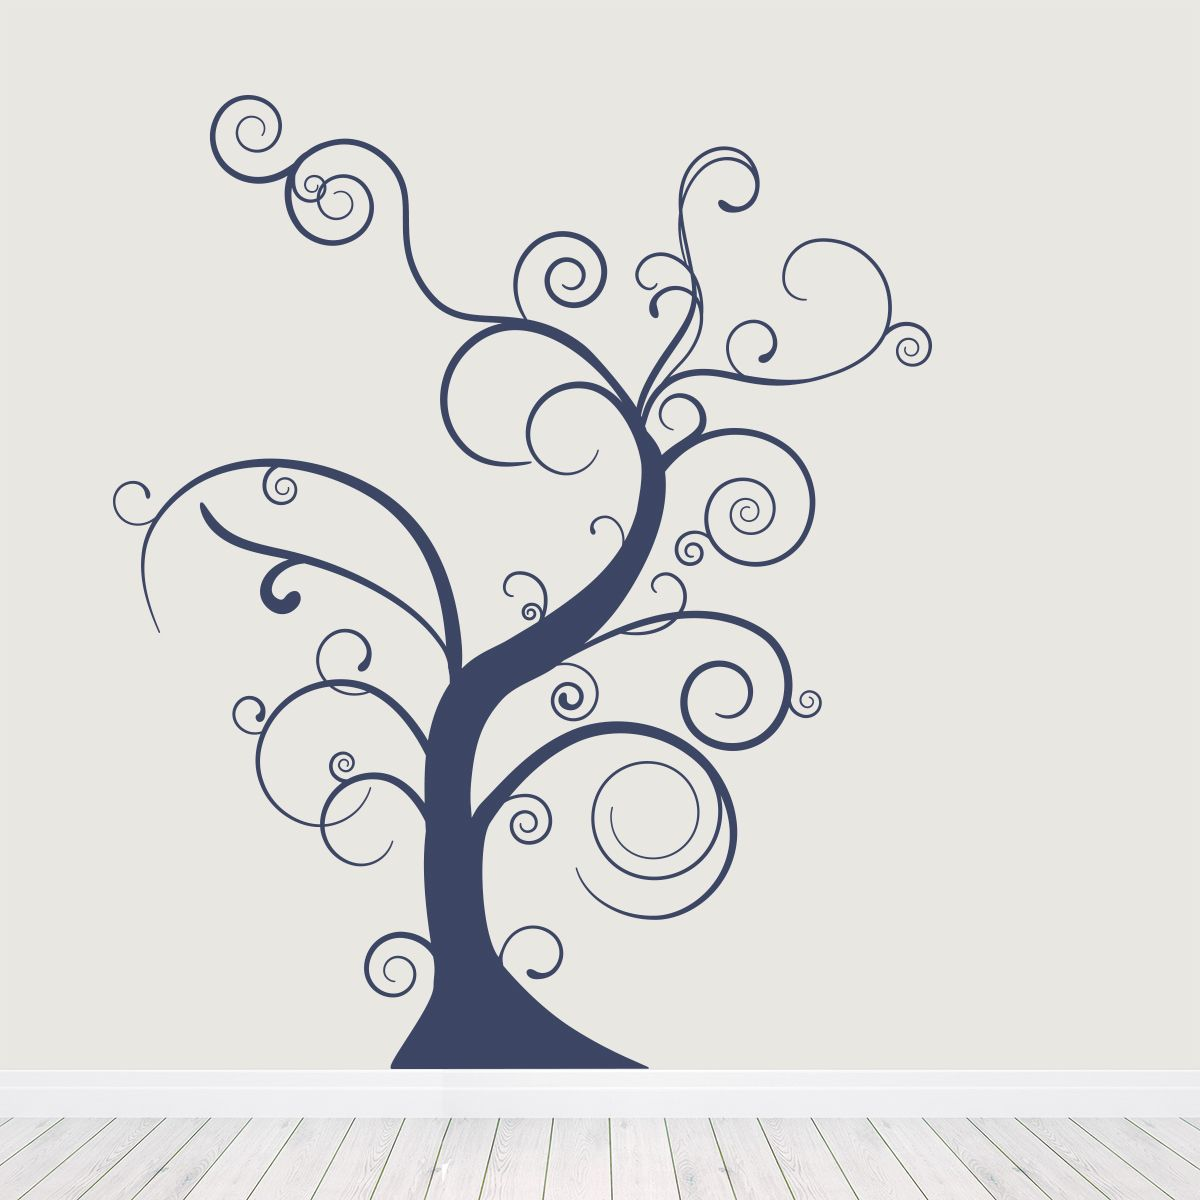 Thin Bare Whimsical Tree Wall Decal  sc 1 st  Pinterest & Thin Bare Whimsical Tree Wall Decal | Whimsical Wall decals and Walls